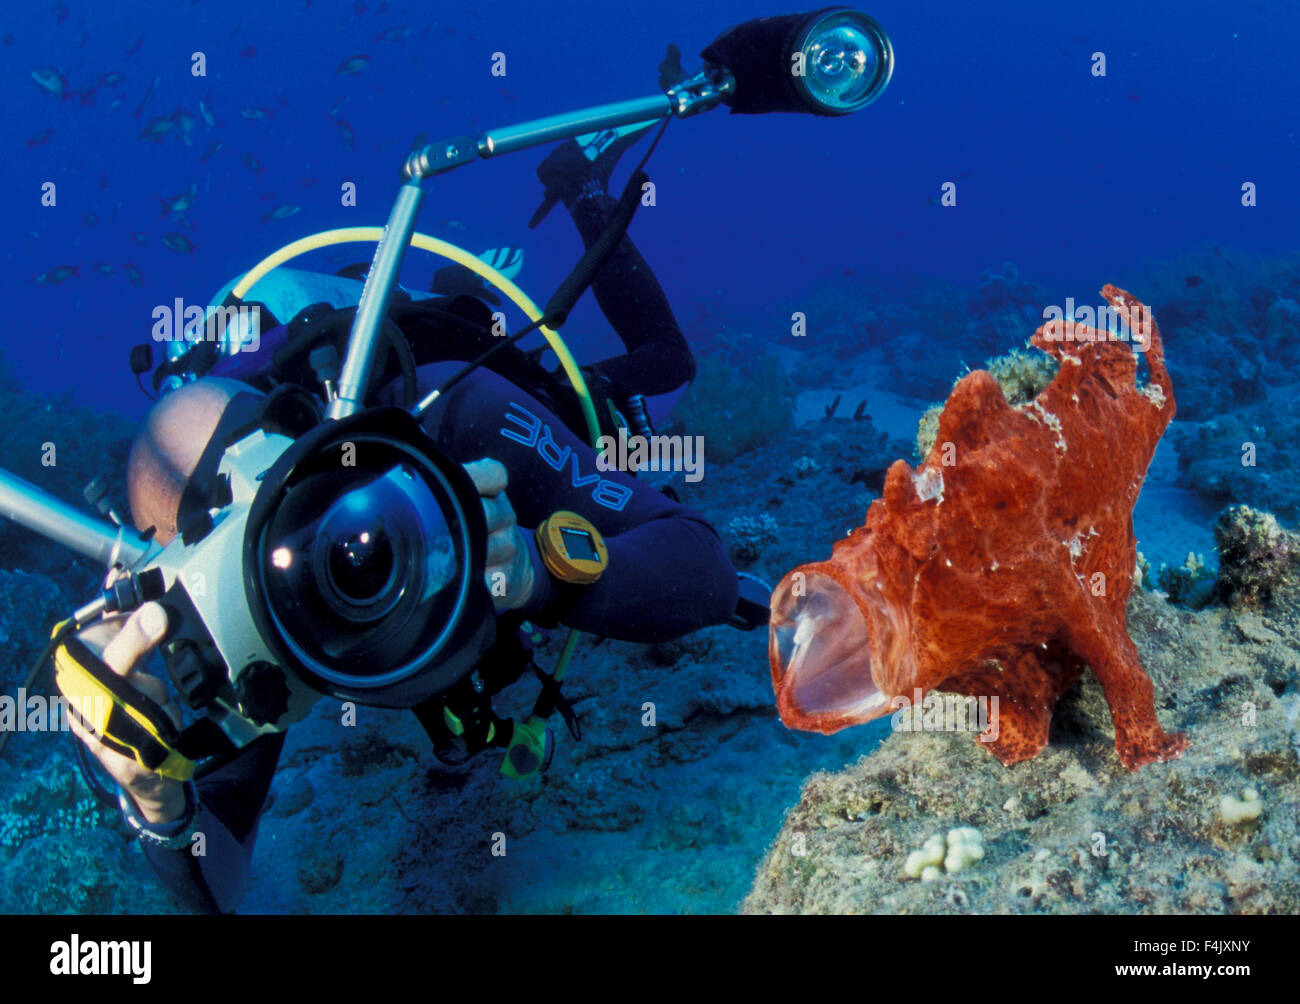 Frogfish - Stock Image